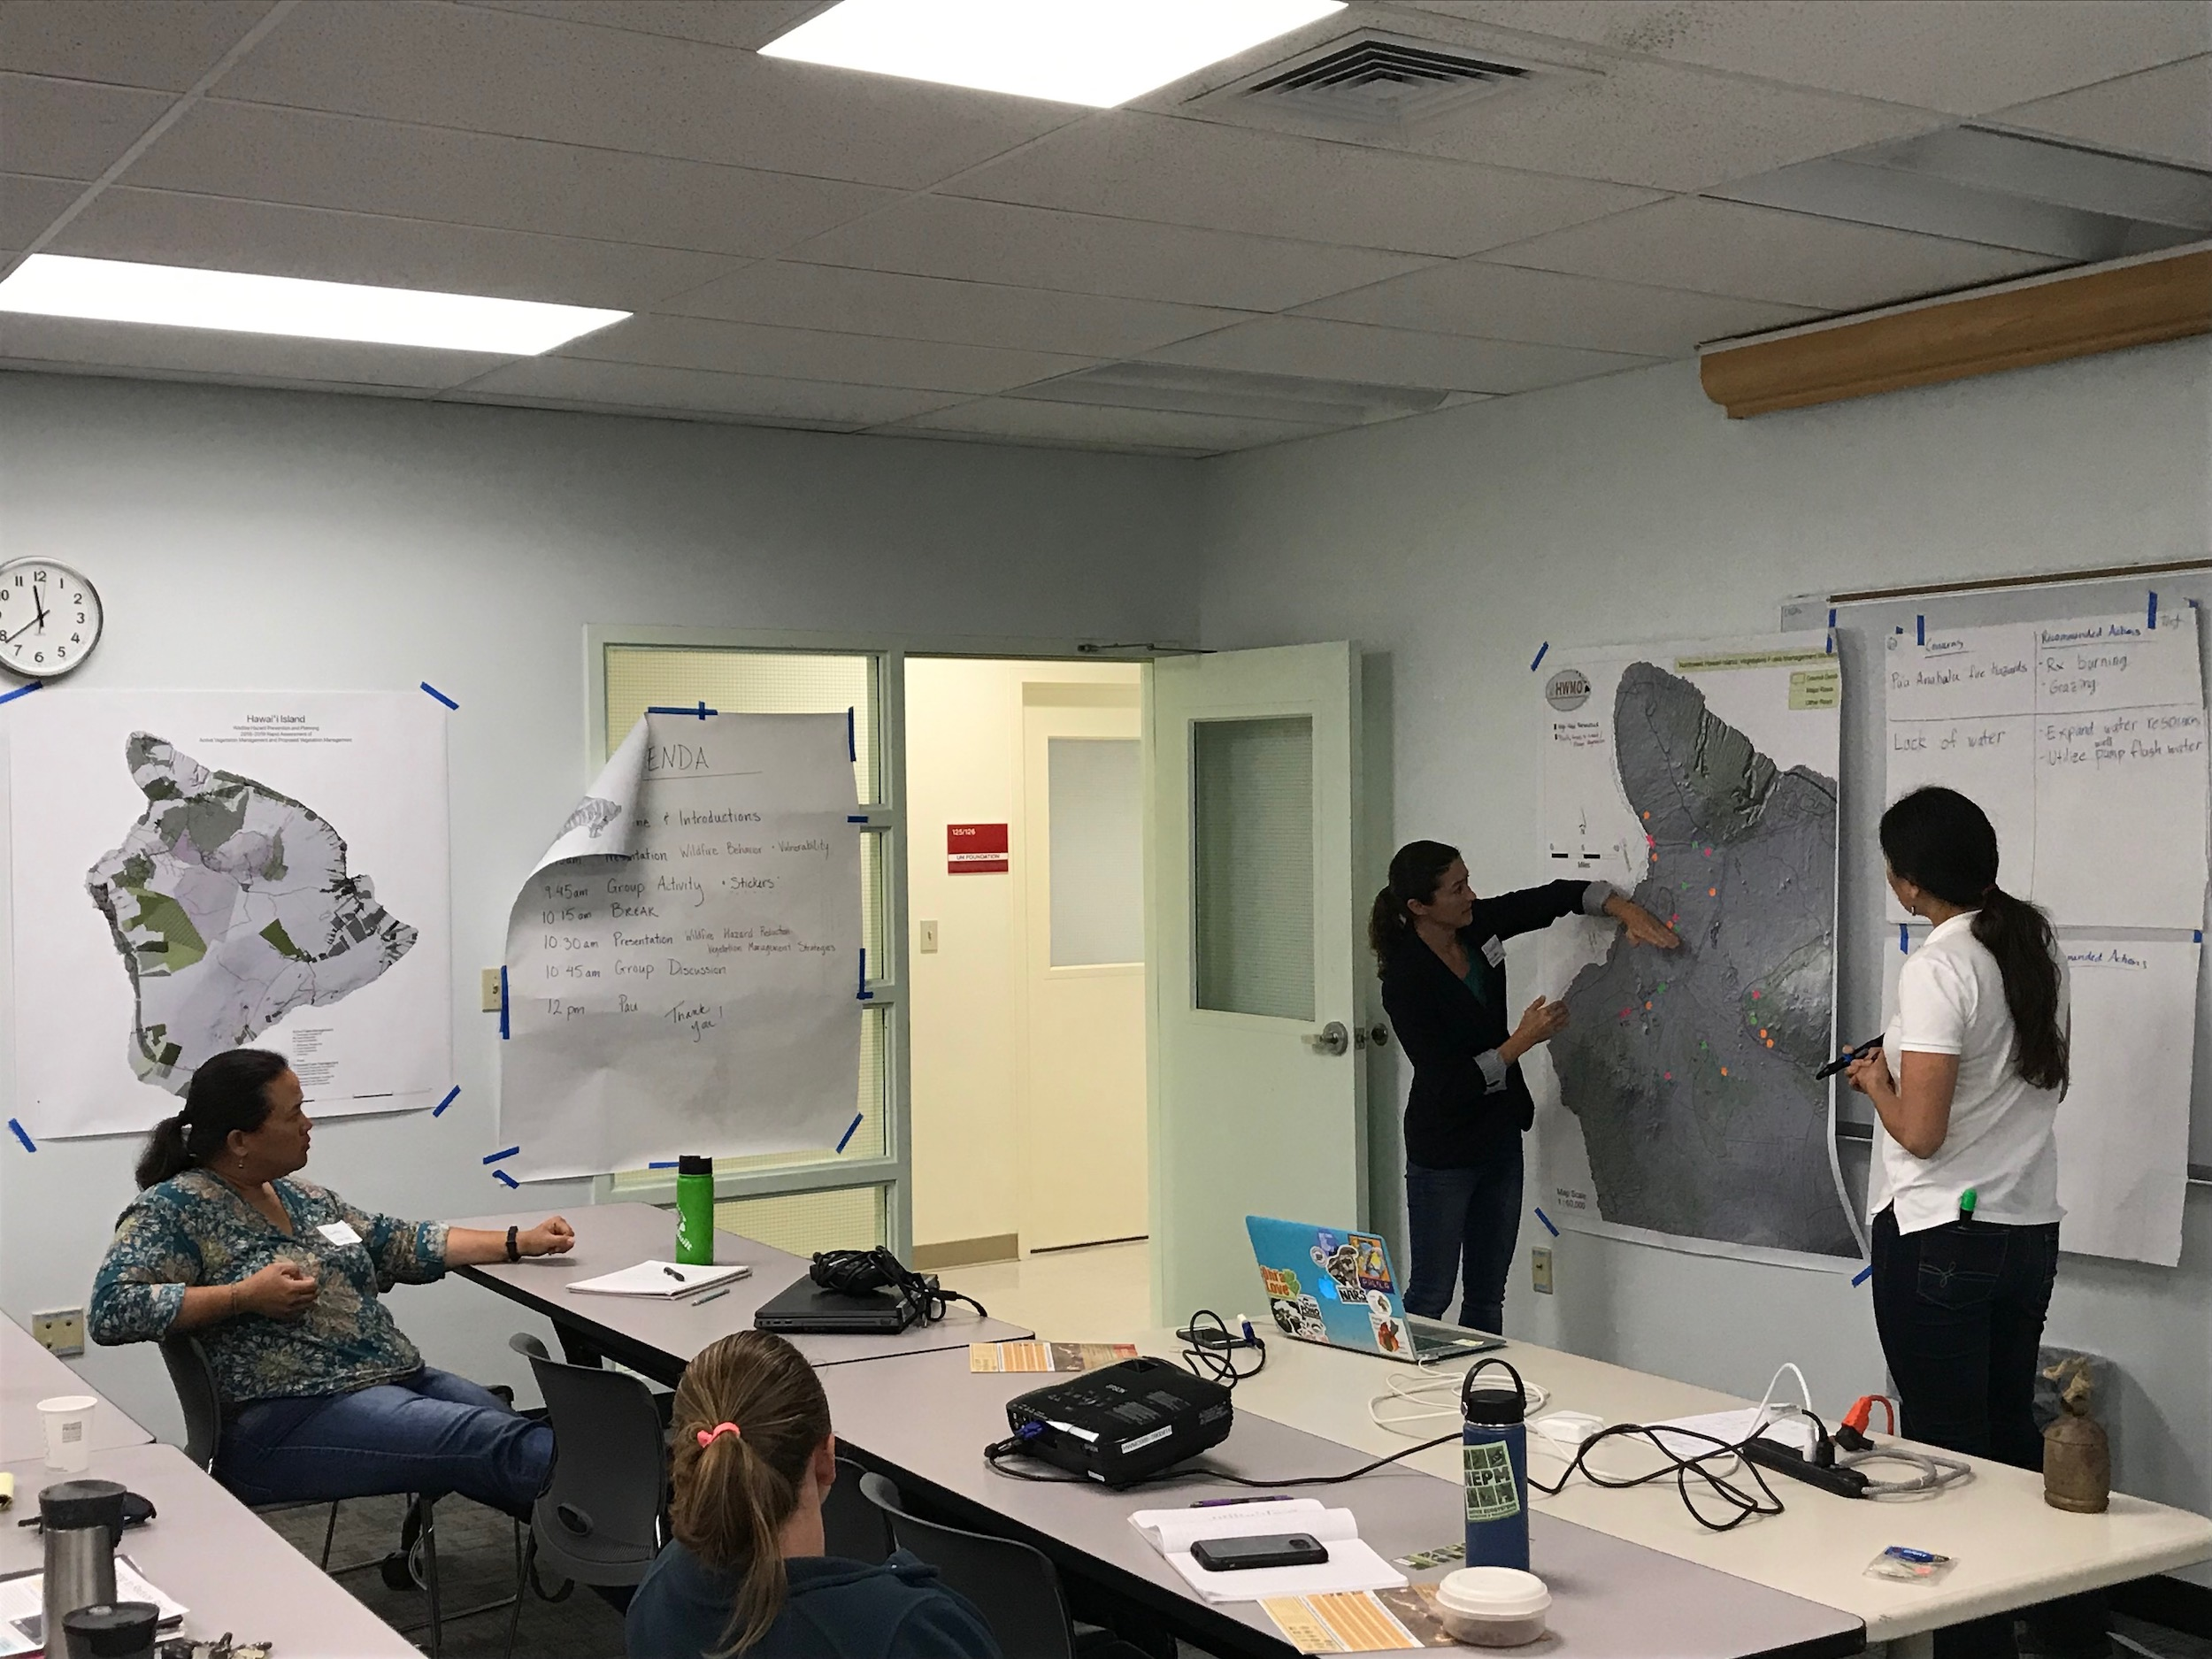 Hawaii Island Hilo Vegetative Fuels Management Collaborative Action Planning Workshop_2_22_2019_31.jpg